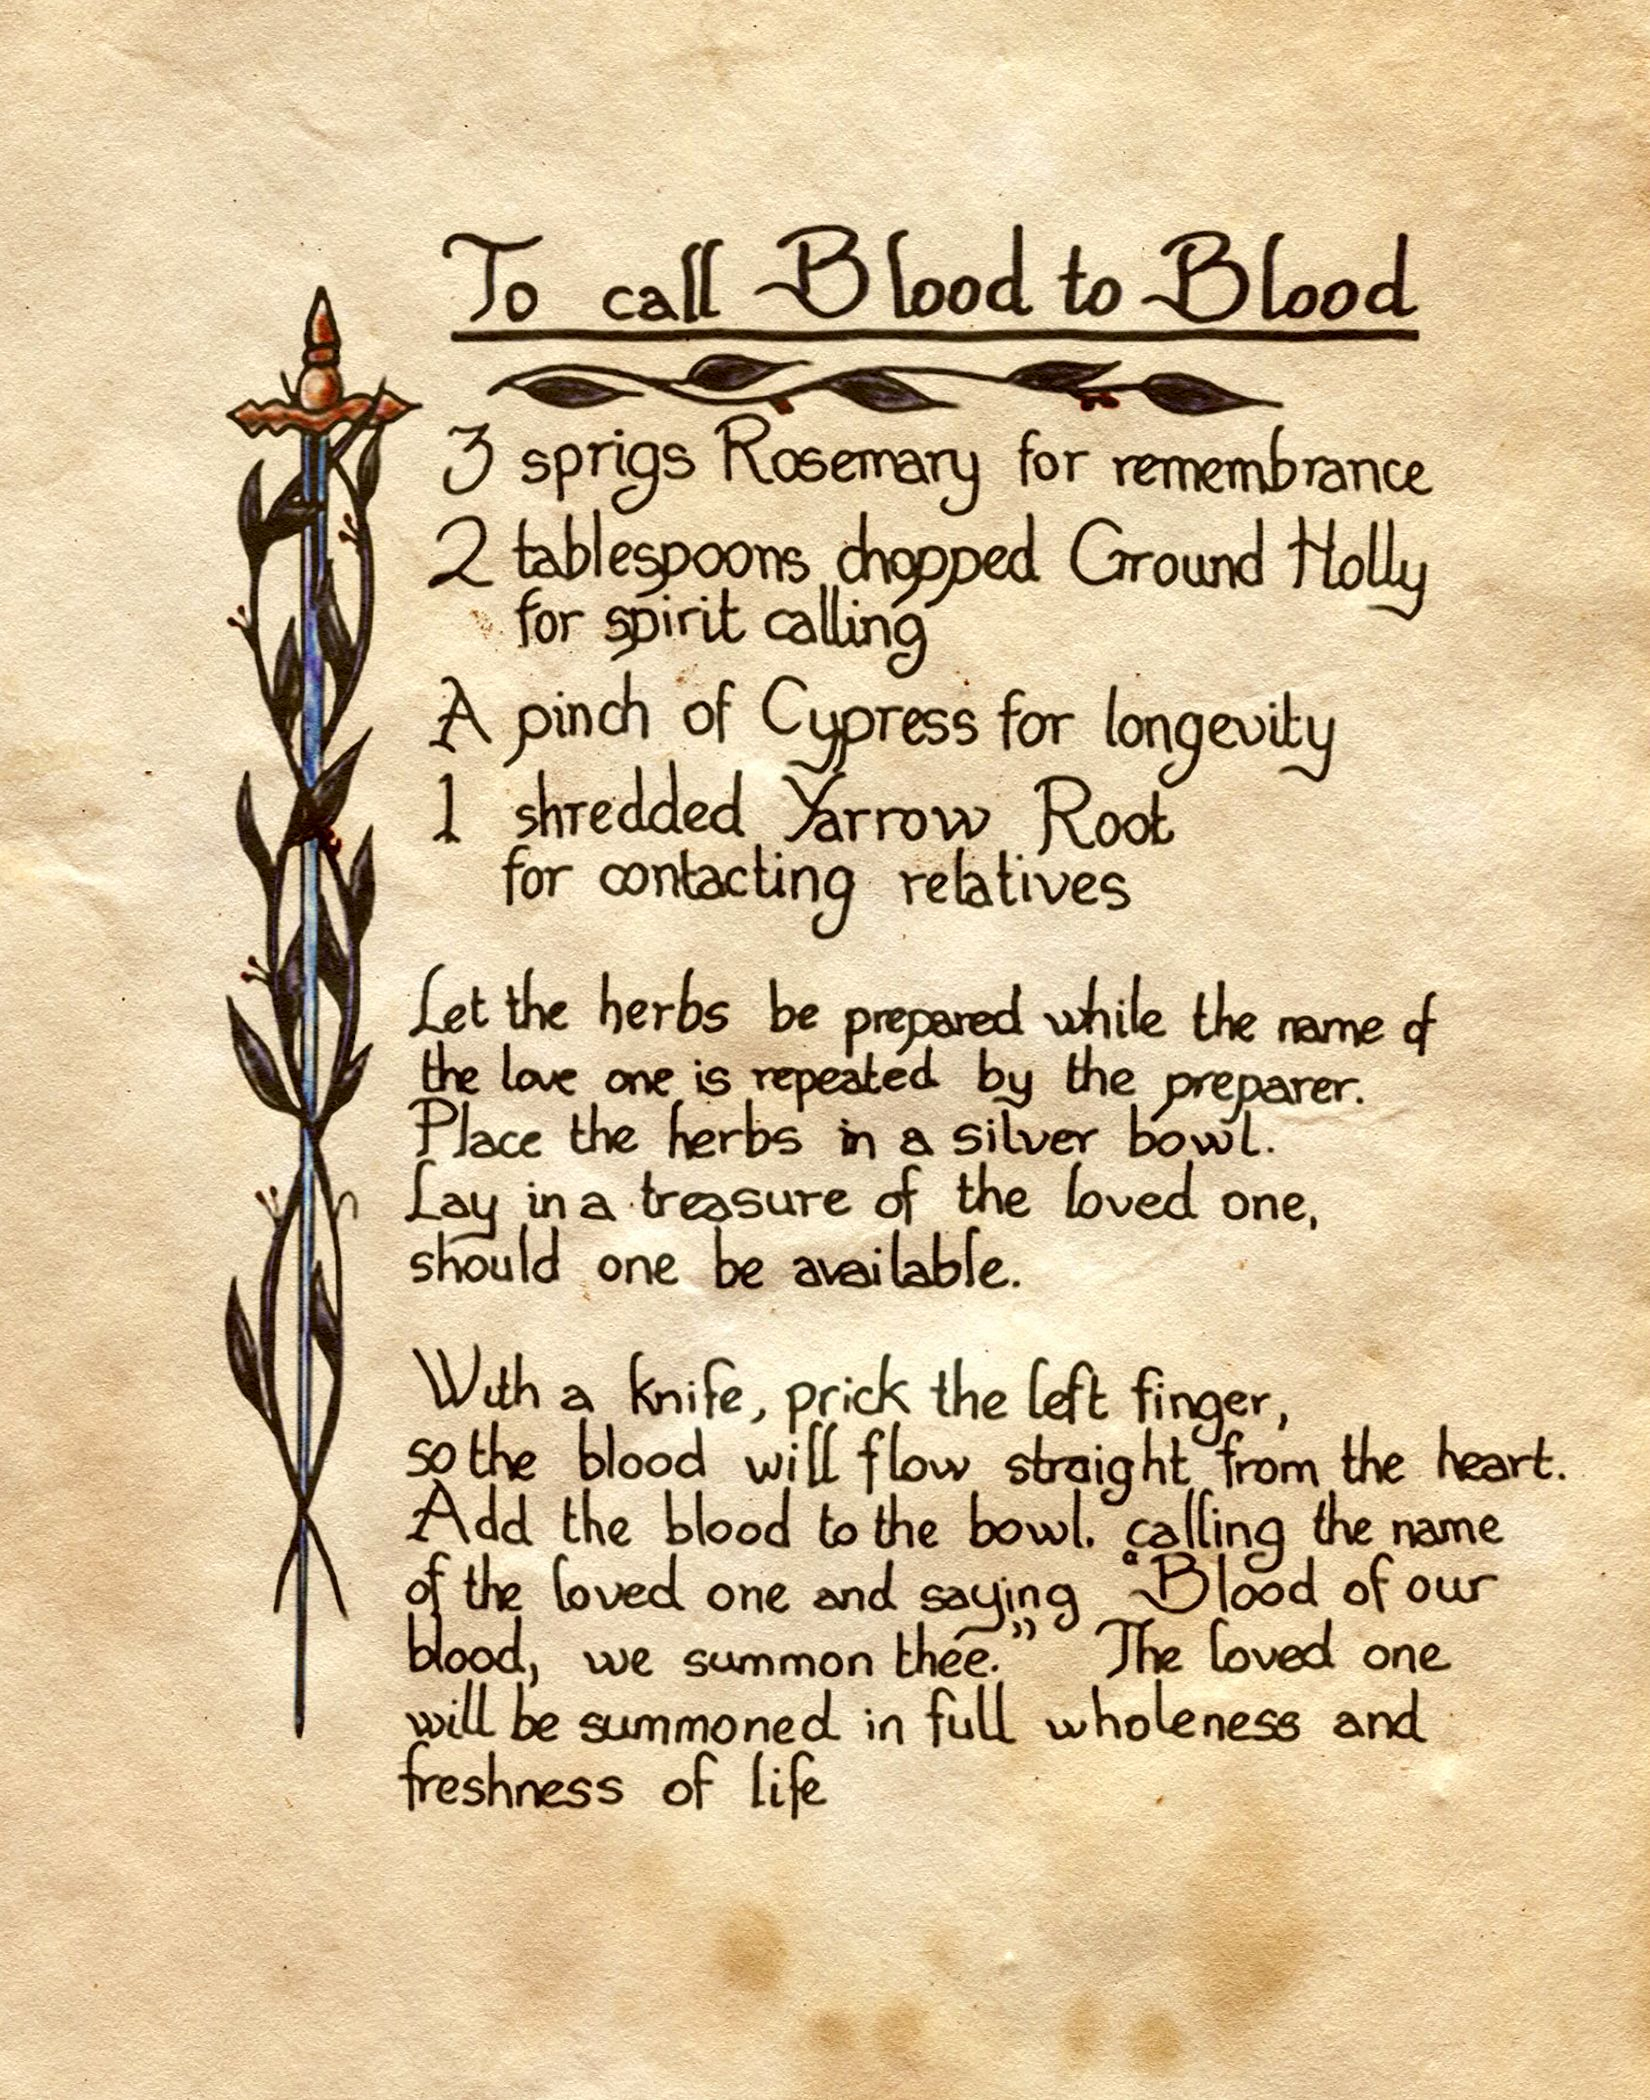 To Call Blood to Blood